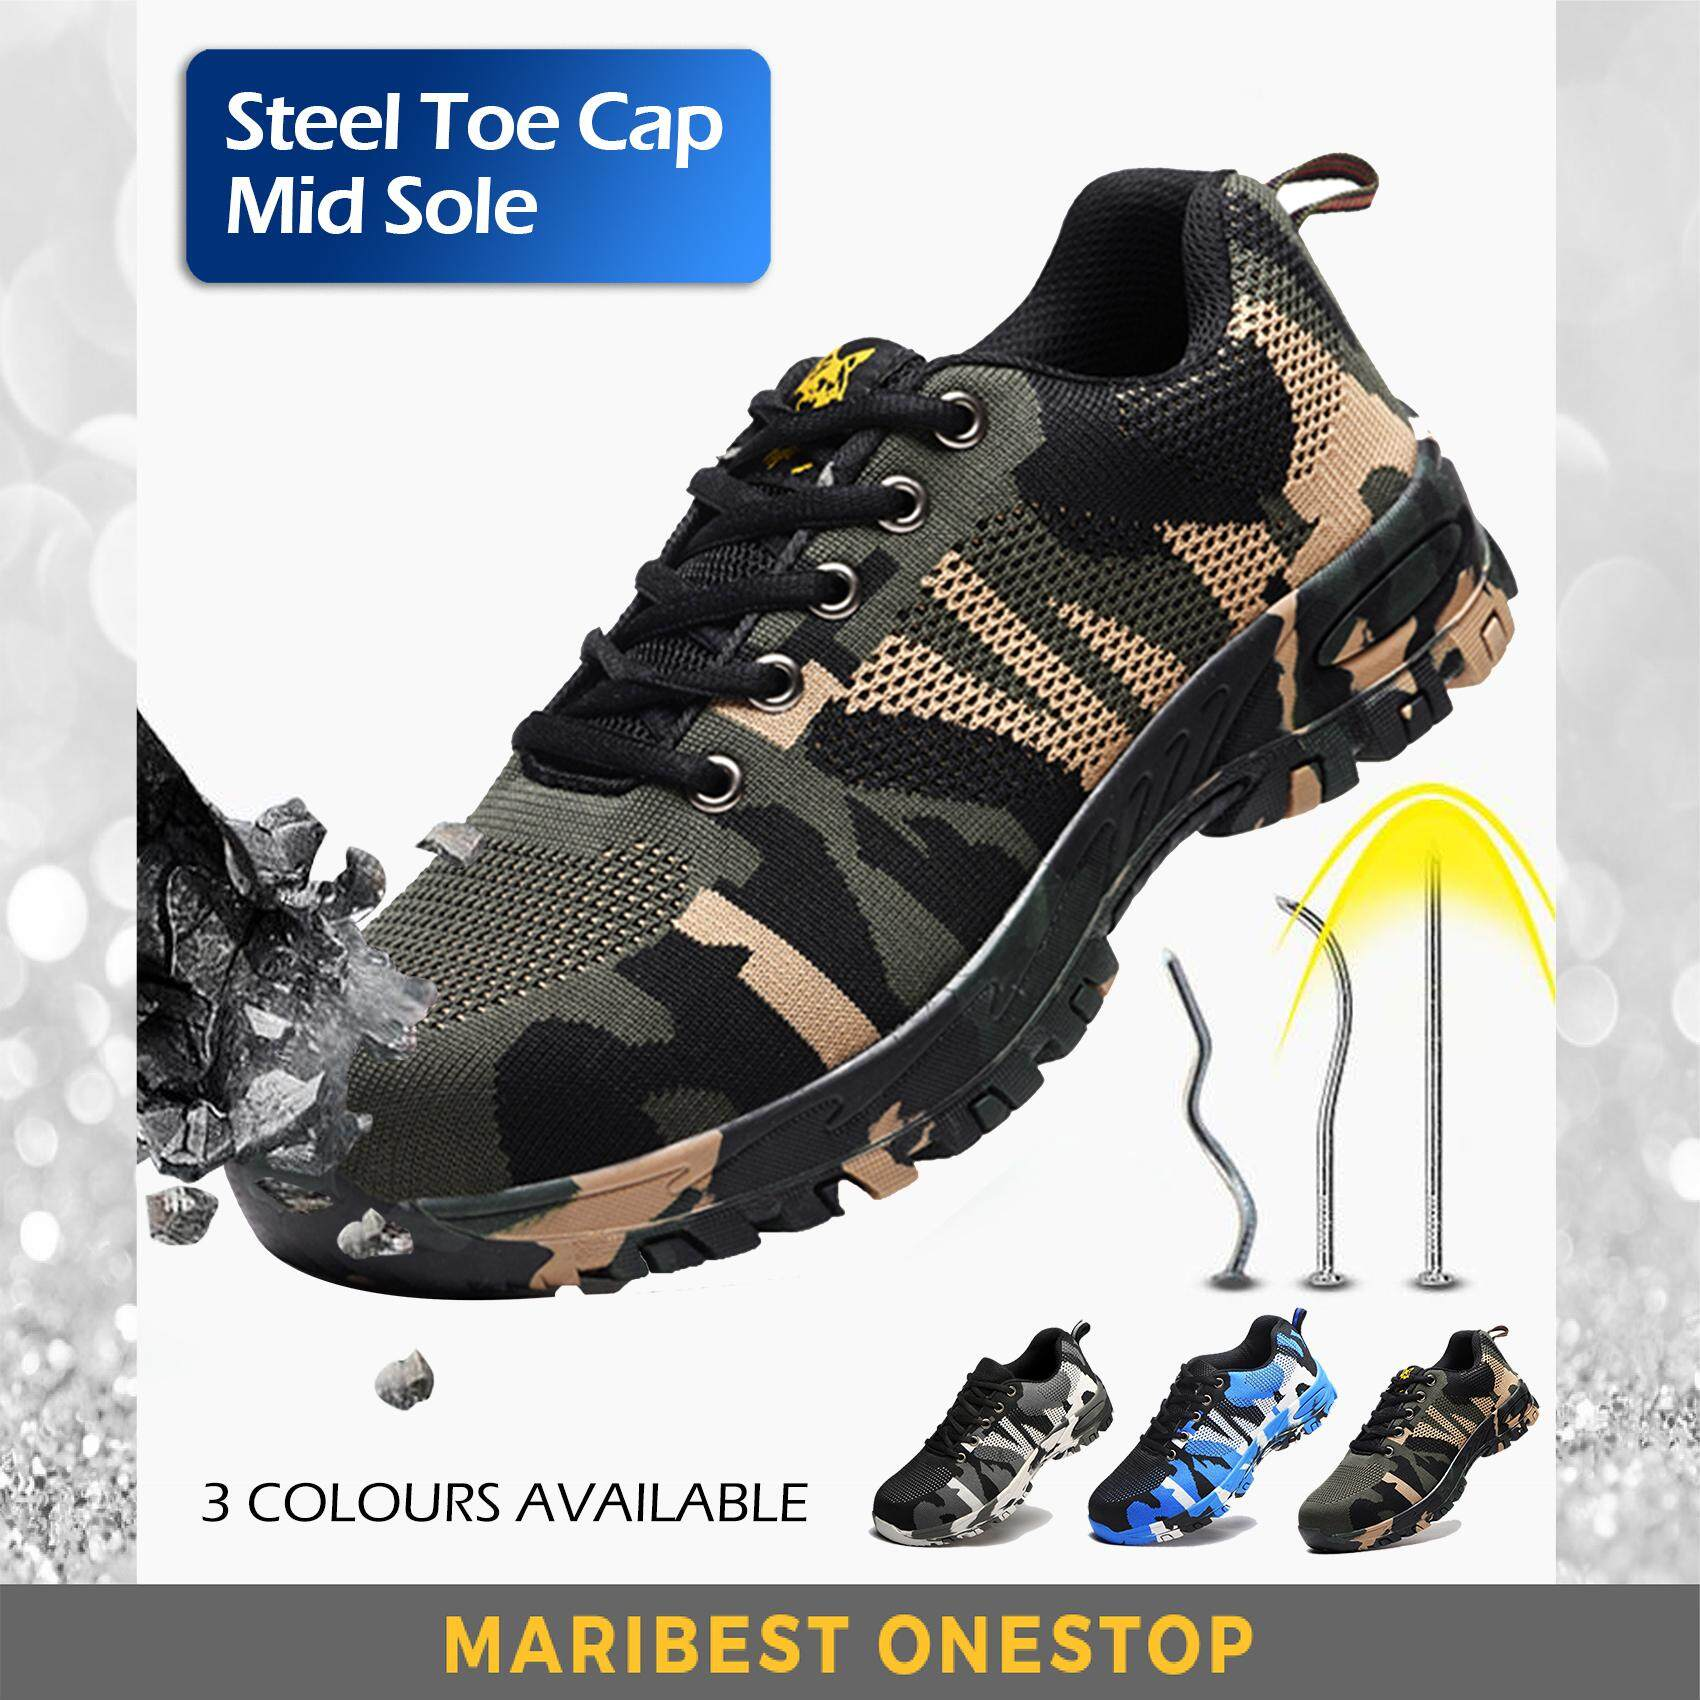 c29acfb301e Steel Toe Cap Midsole Low Cut Safety Shoe Safety Boot Military Camouflage  Boots Hiking Shoe